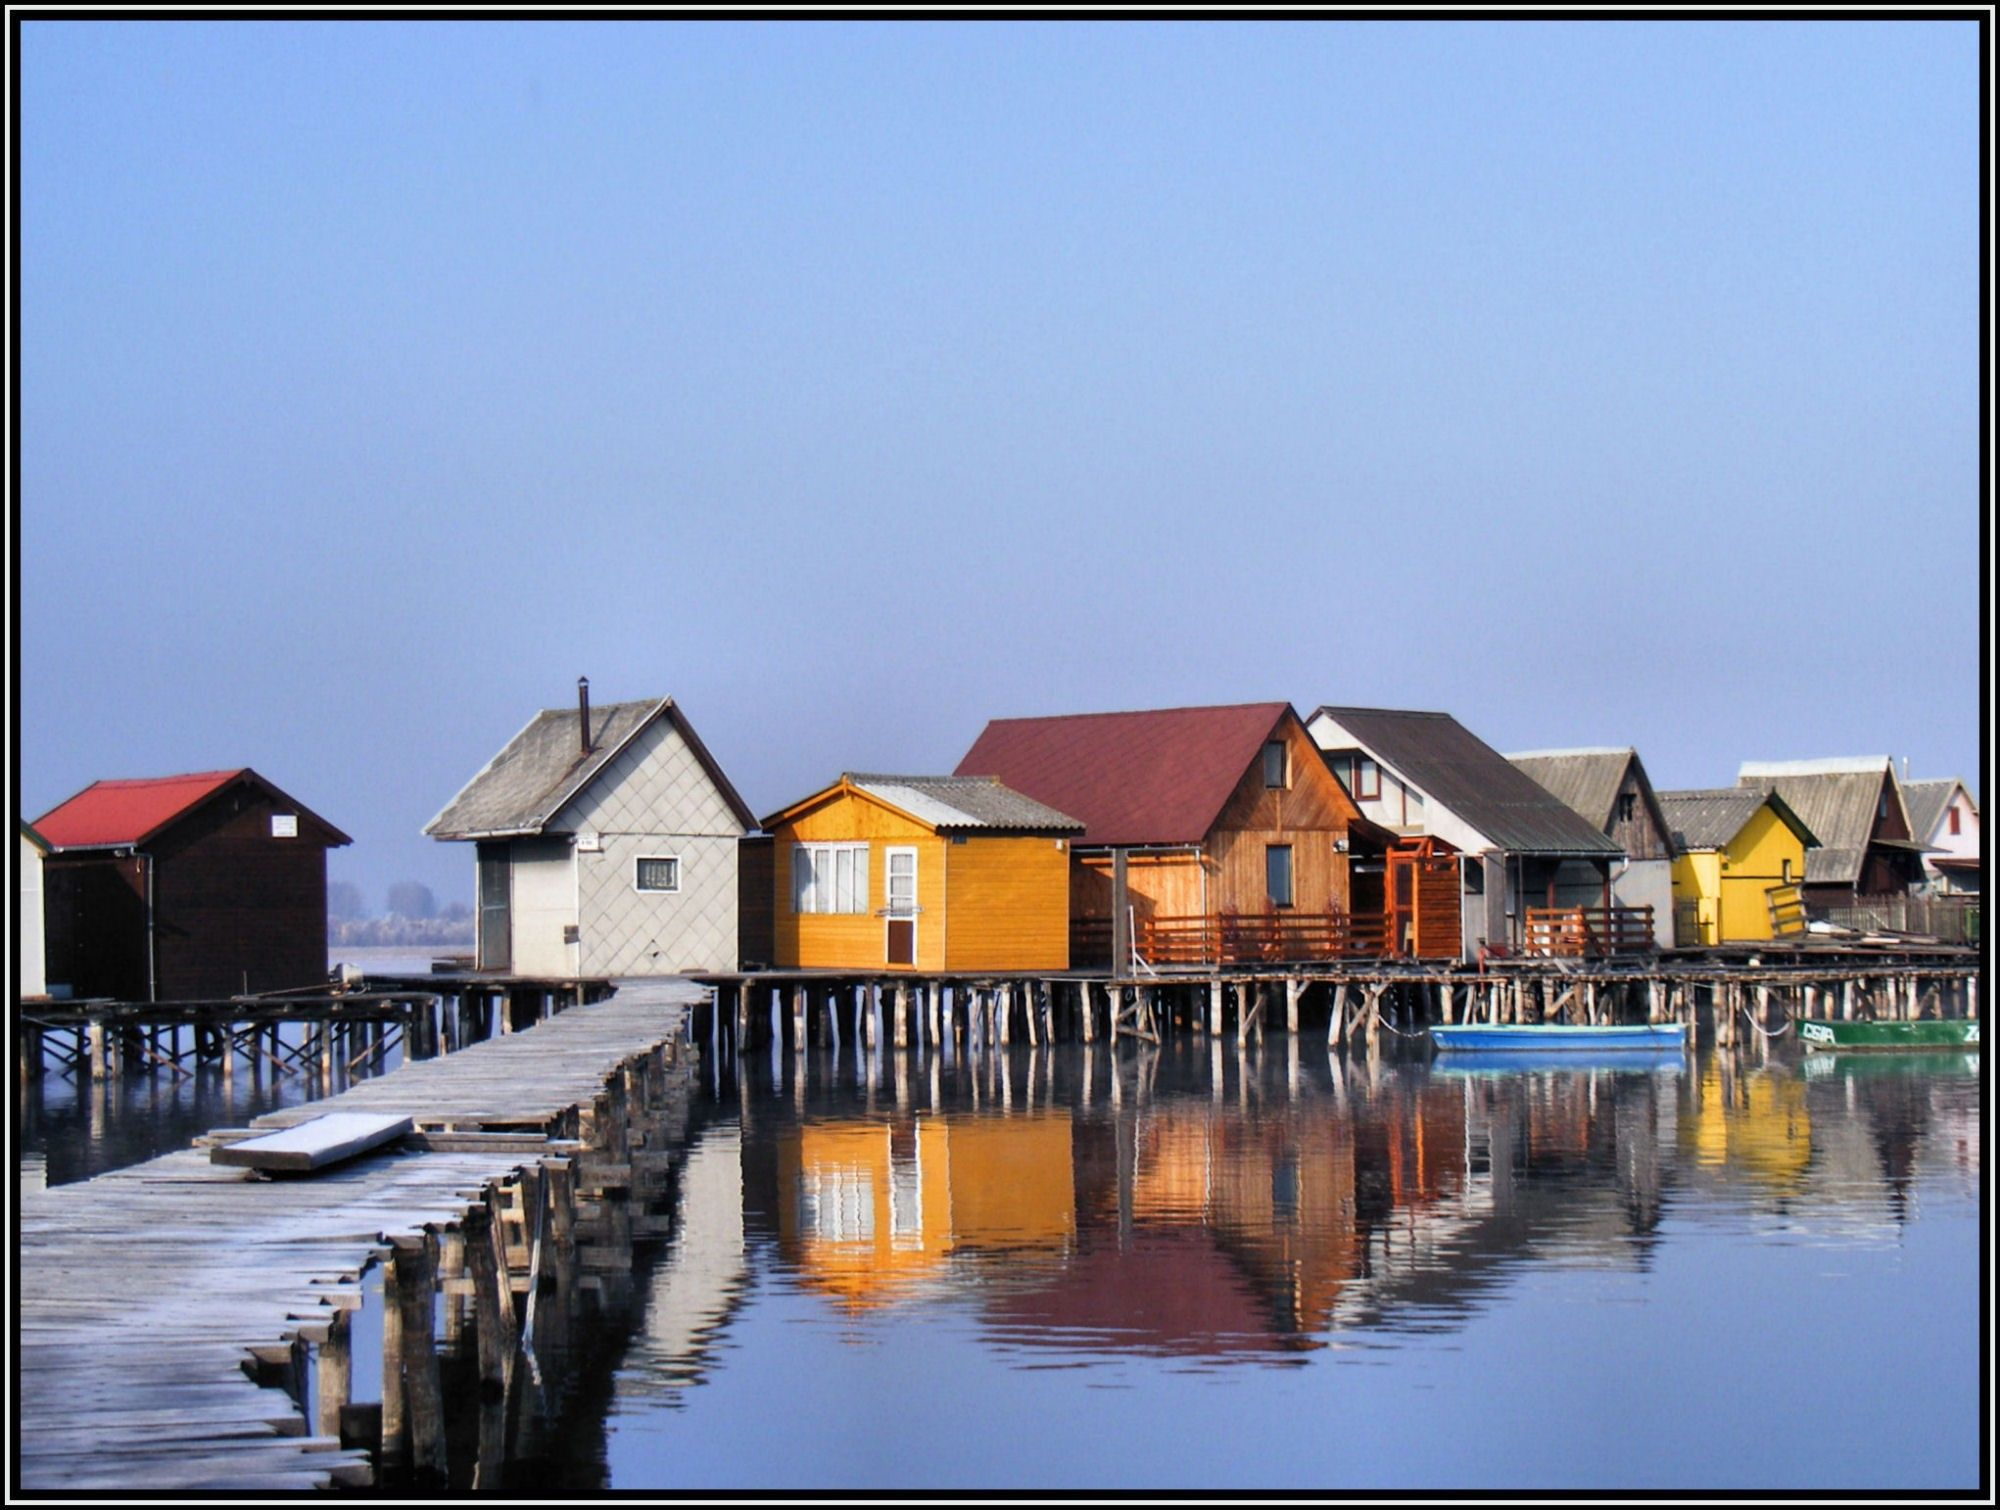 Picturesque village on stilts on a lake in Hungary